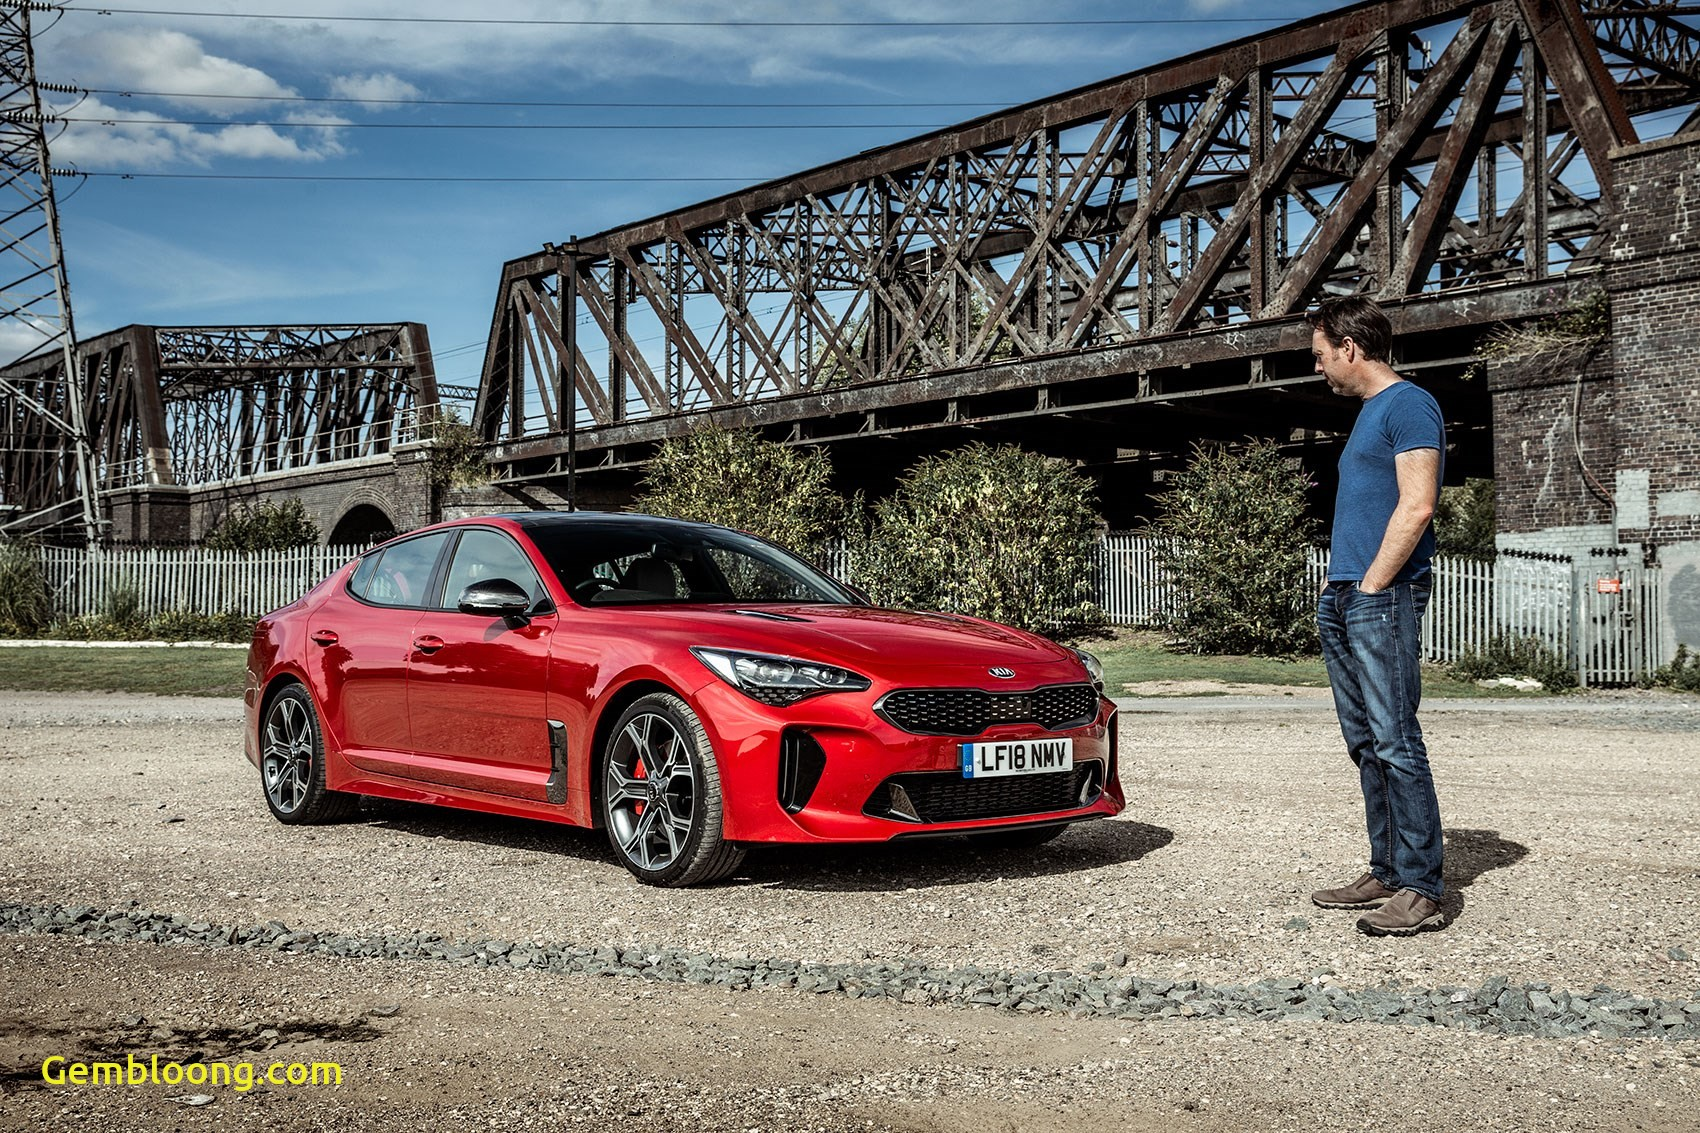 Used All Wheel Drive Cars for Sale Near Me Fresh Kia Stinger Long Term 2018 Review